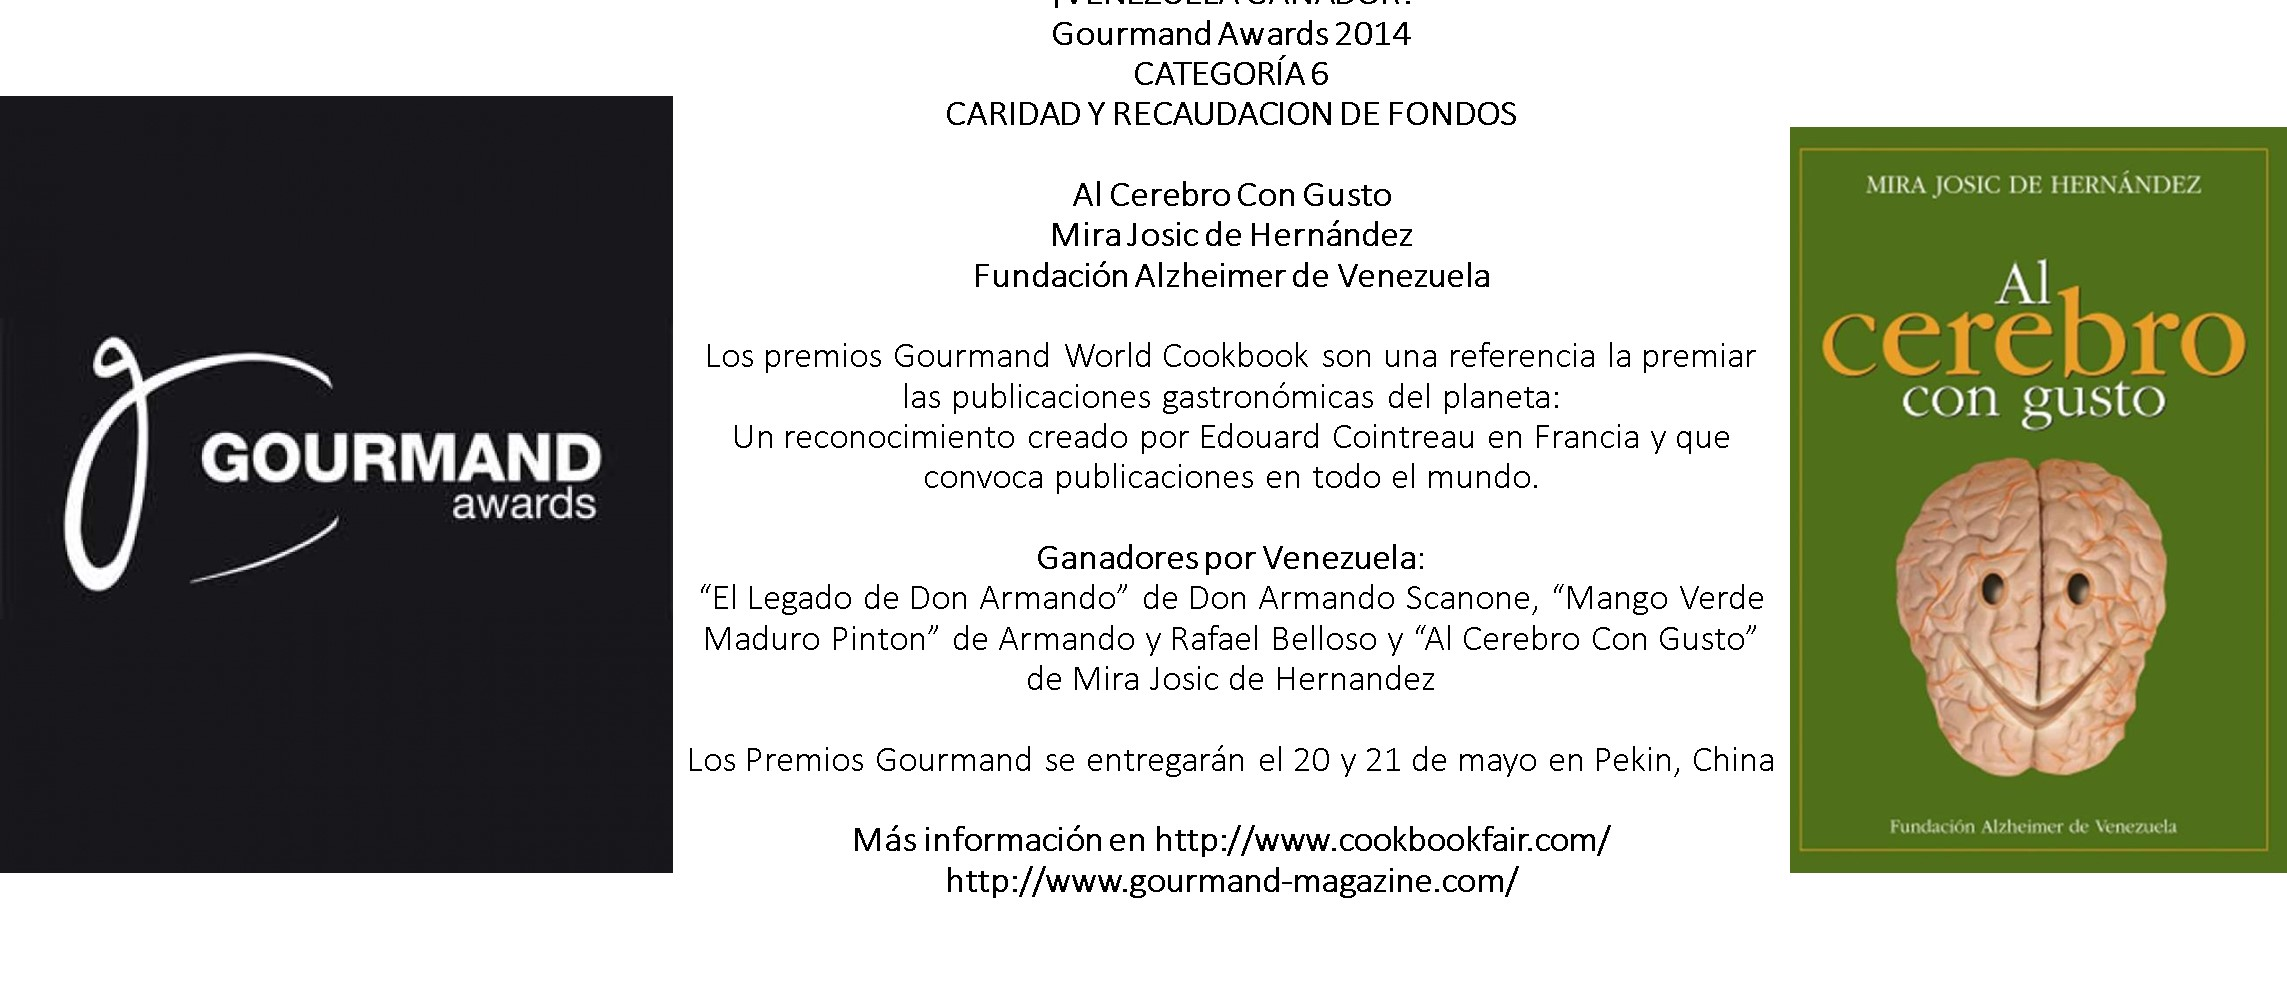 GOURMAND AWARDS 2014